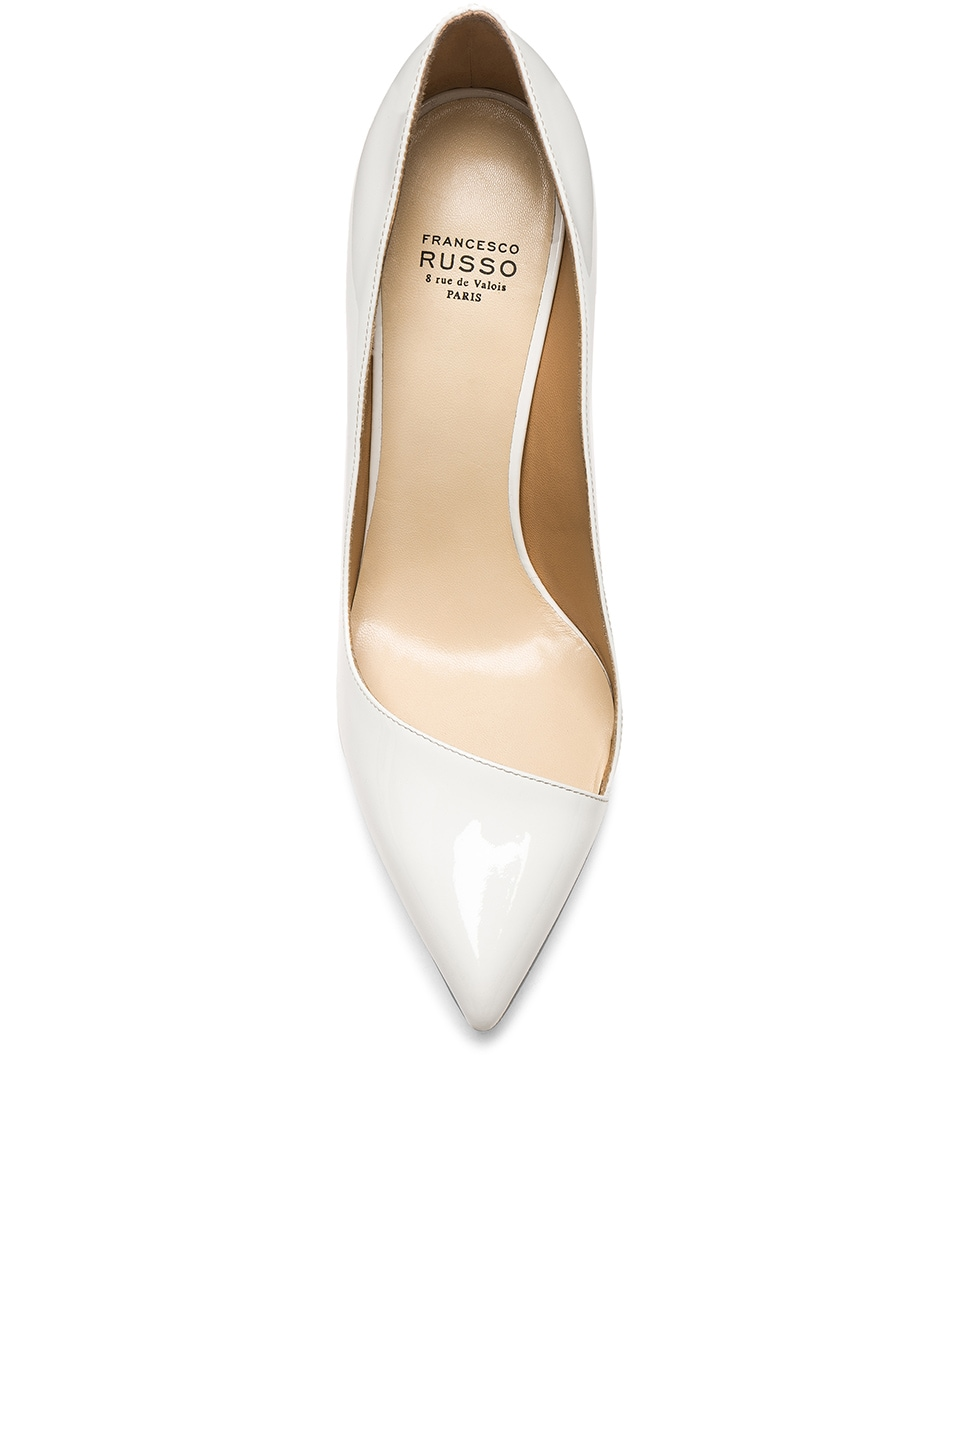 Image 4 of FRANCESCO RUSSO Pointed Toe Heels in White